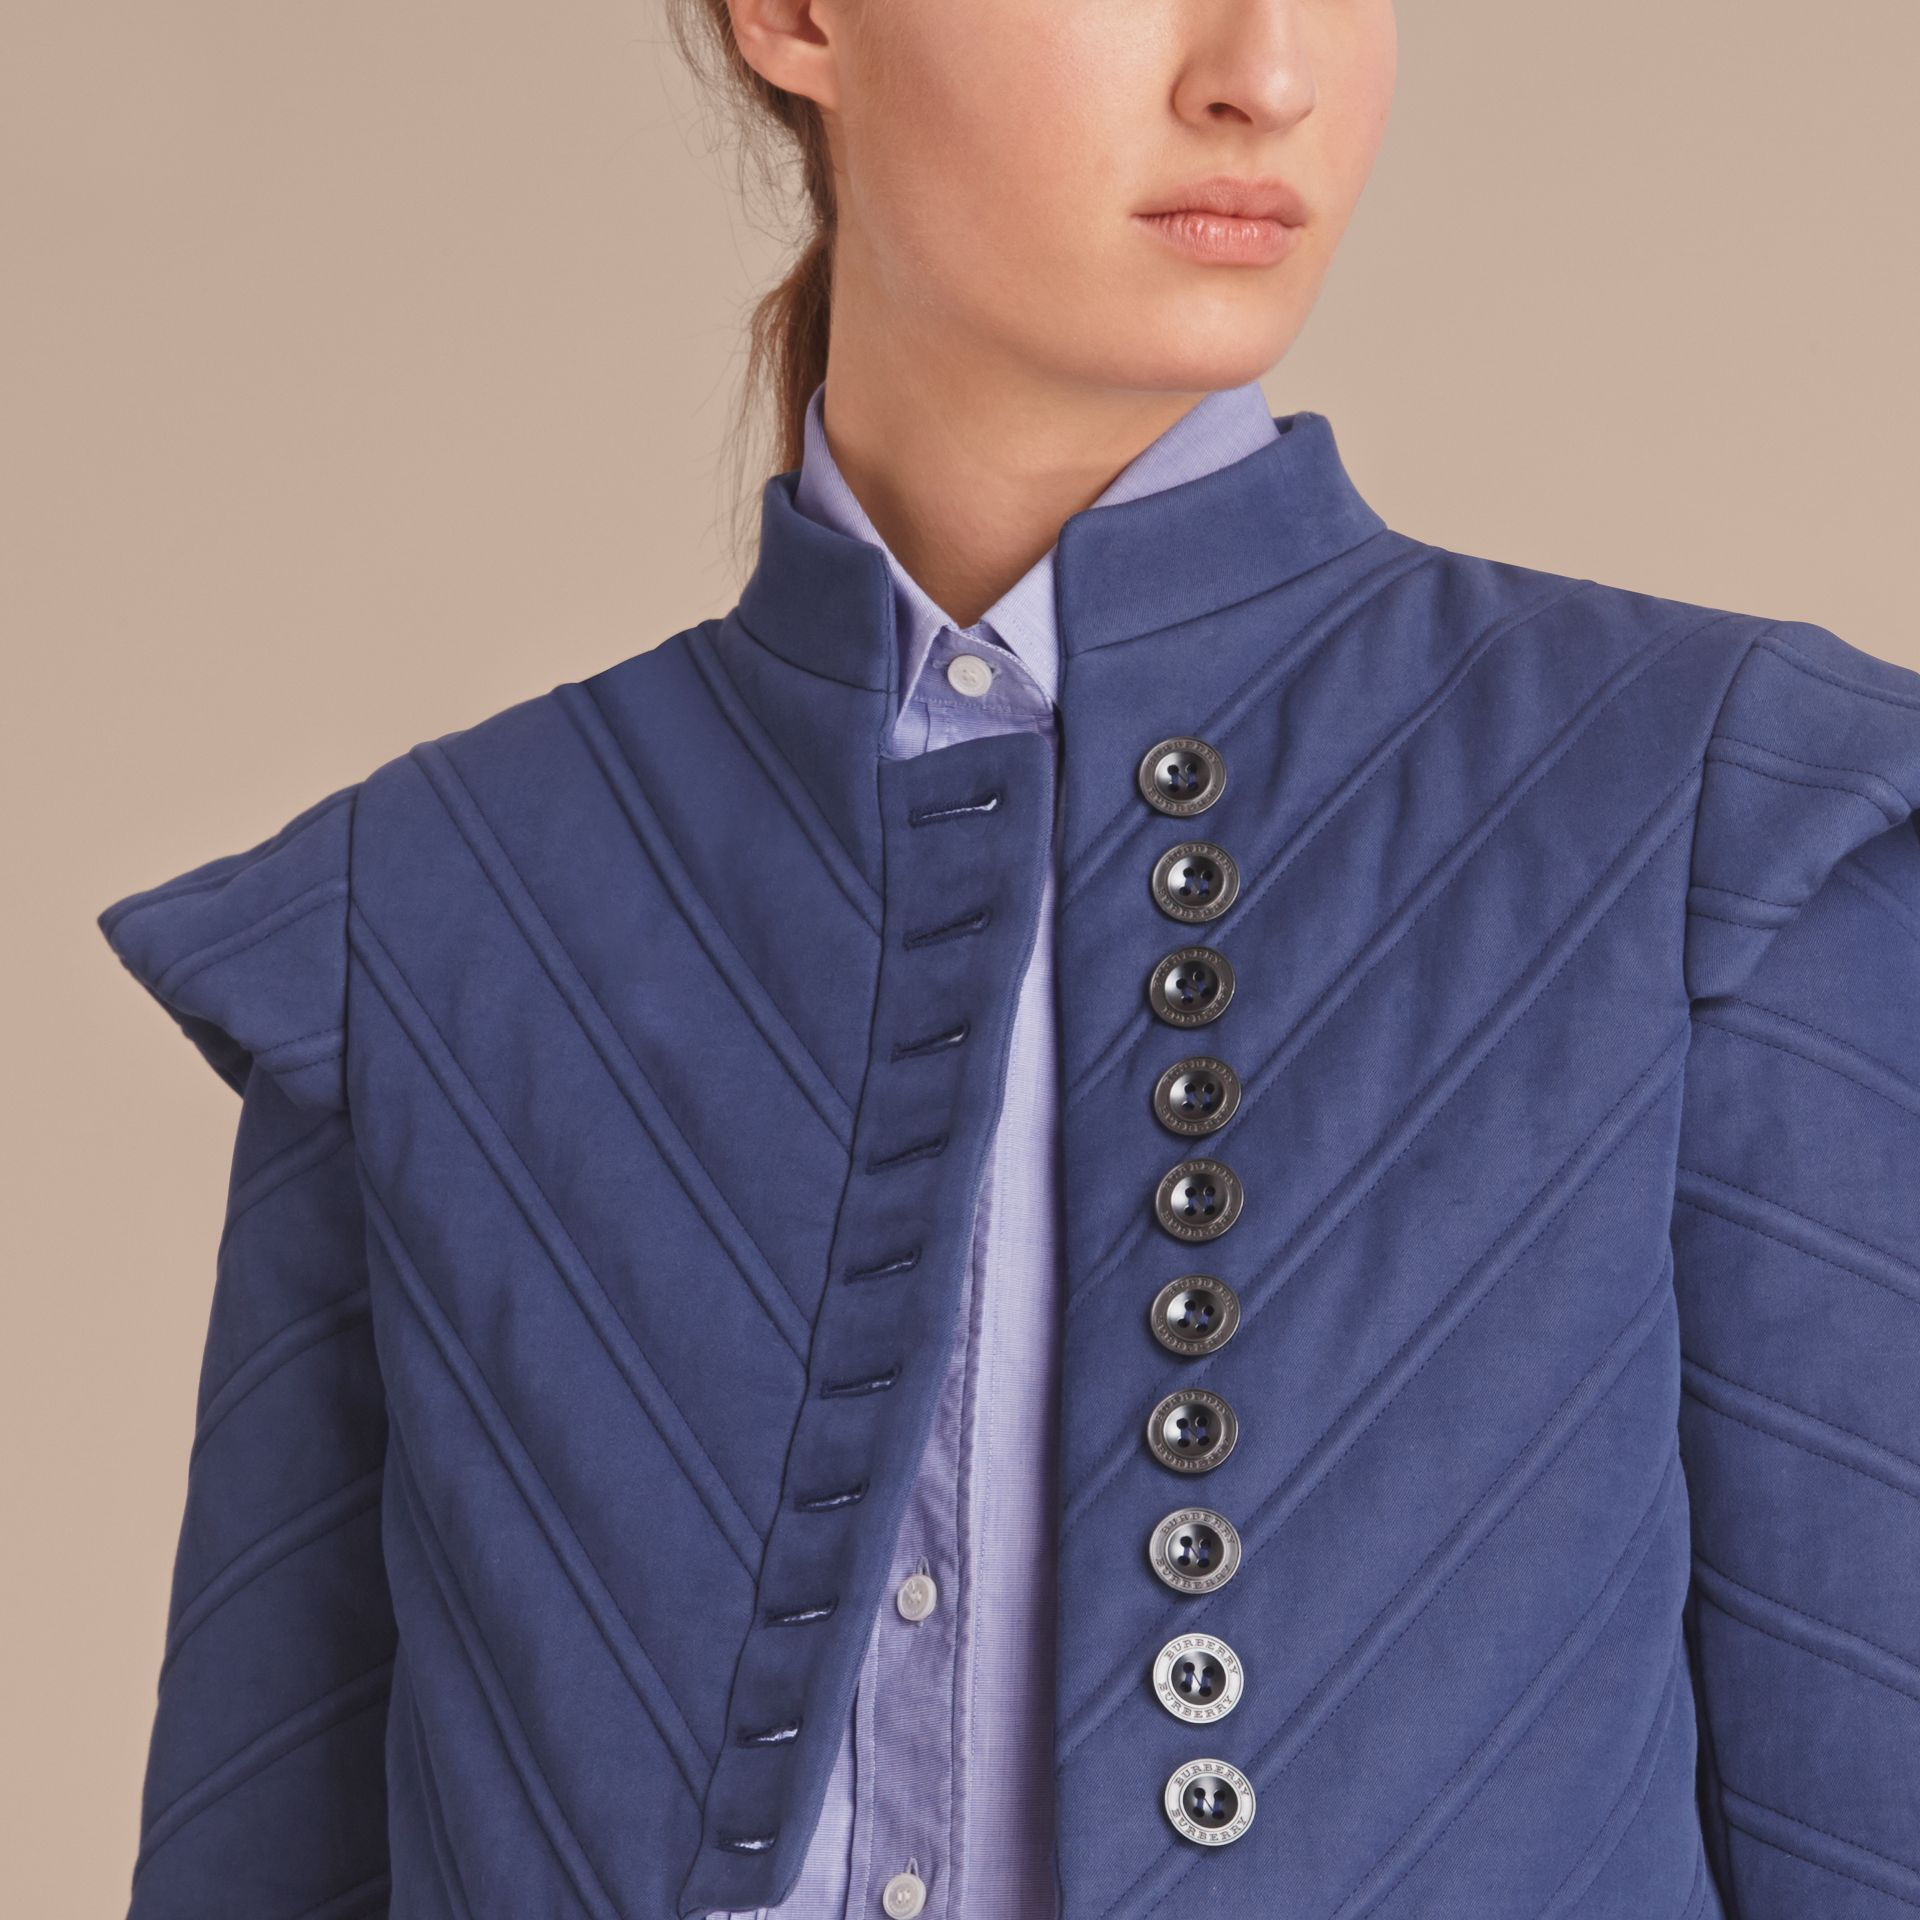 Quilted Ramie Cotton Military Jacket in Indigo - Women | Burberry - gallery image 5